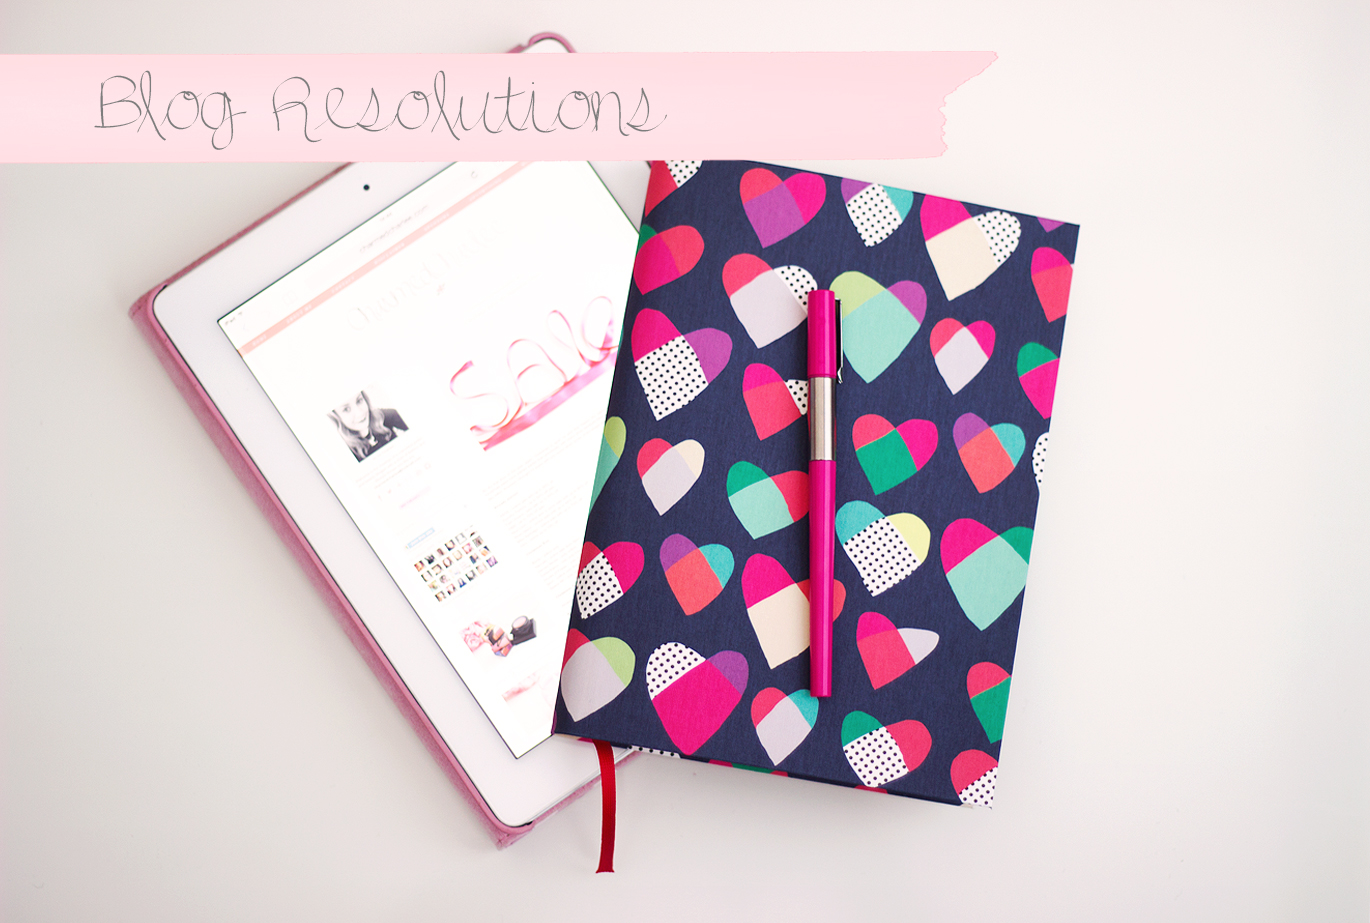 Blogging Resolutions, Blogging Resolutions 2015